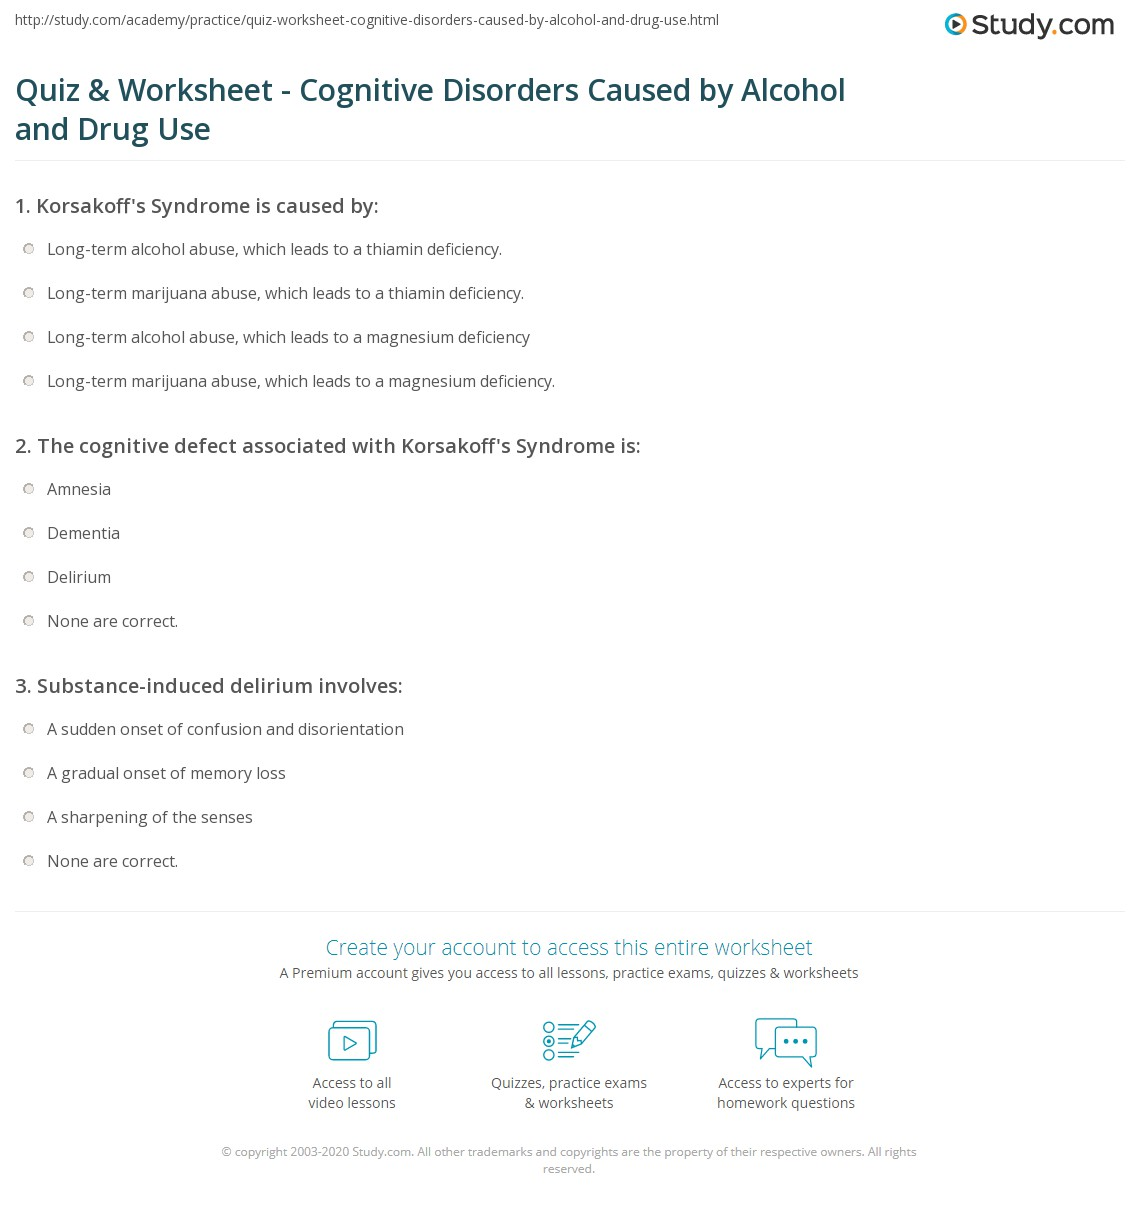 Alcohol and Drug-Induced Cognitive Disorders: Types, Causes & Symptoms